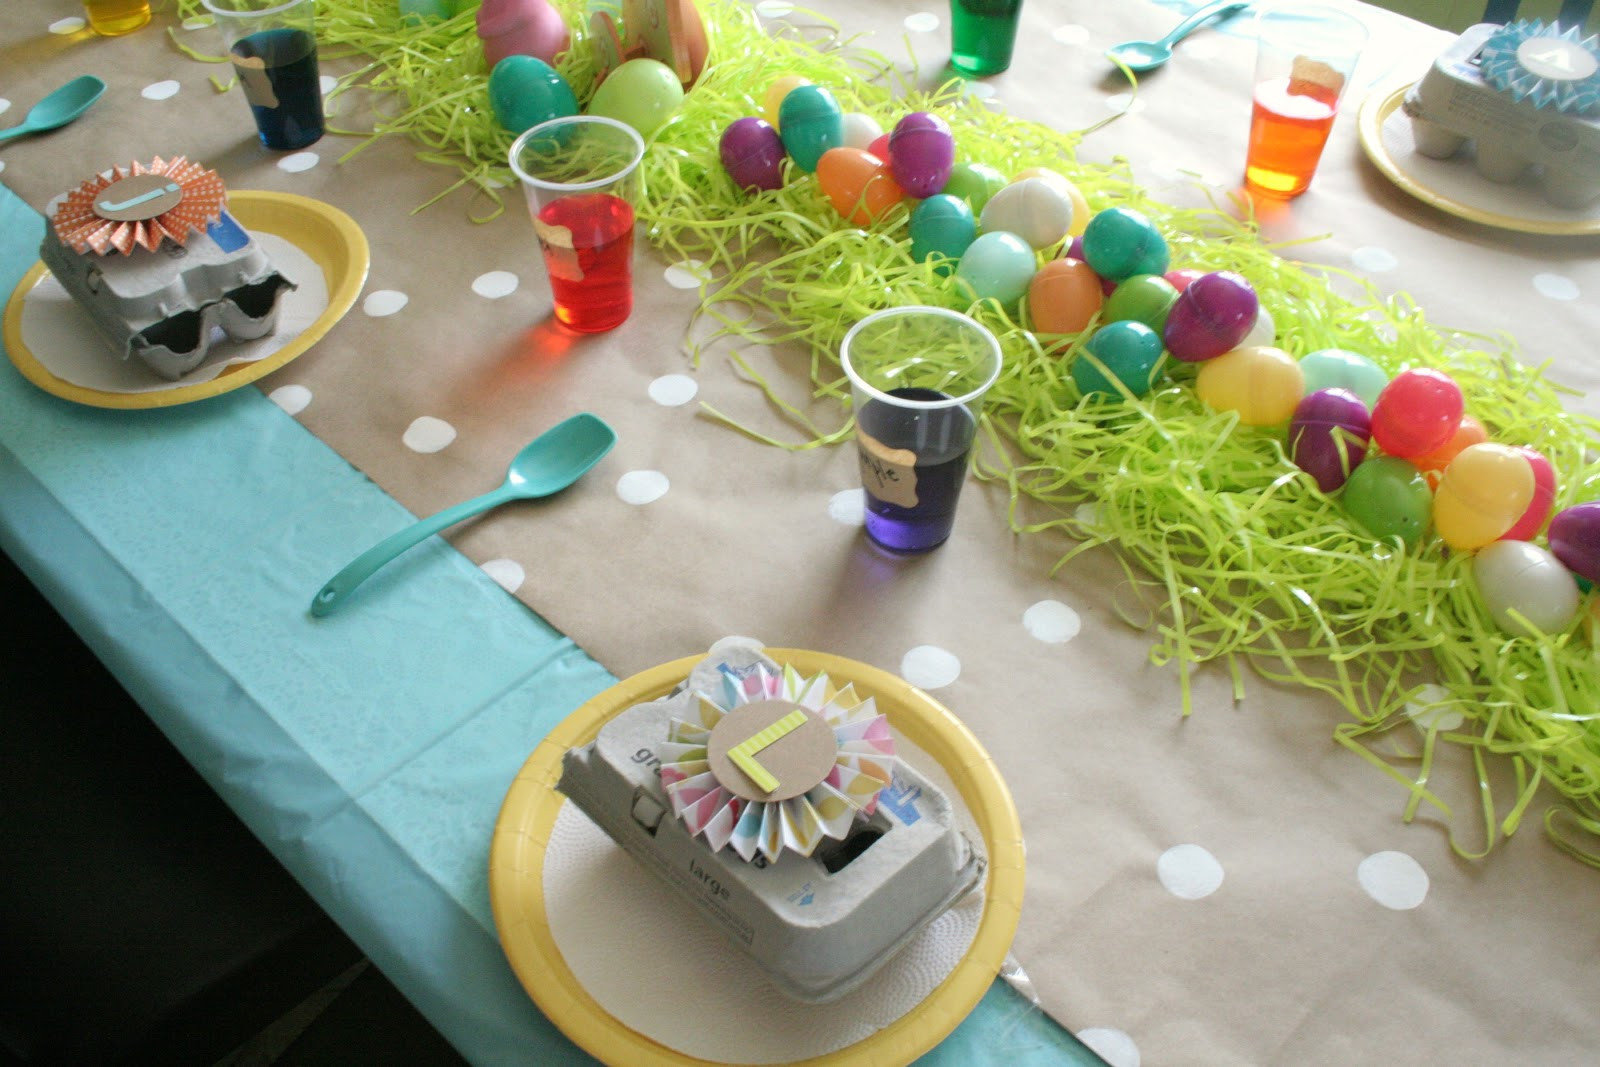 Easter Egg Dying Party Ideas  Easter Egg Dying Party Sugar Bee Crafts